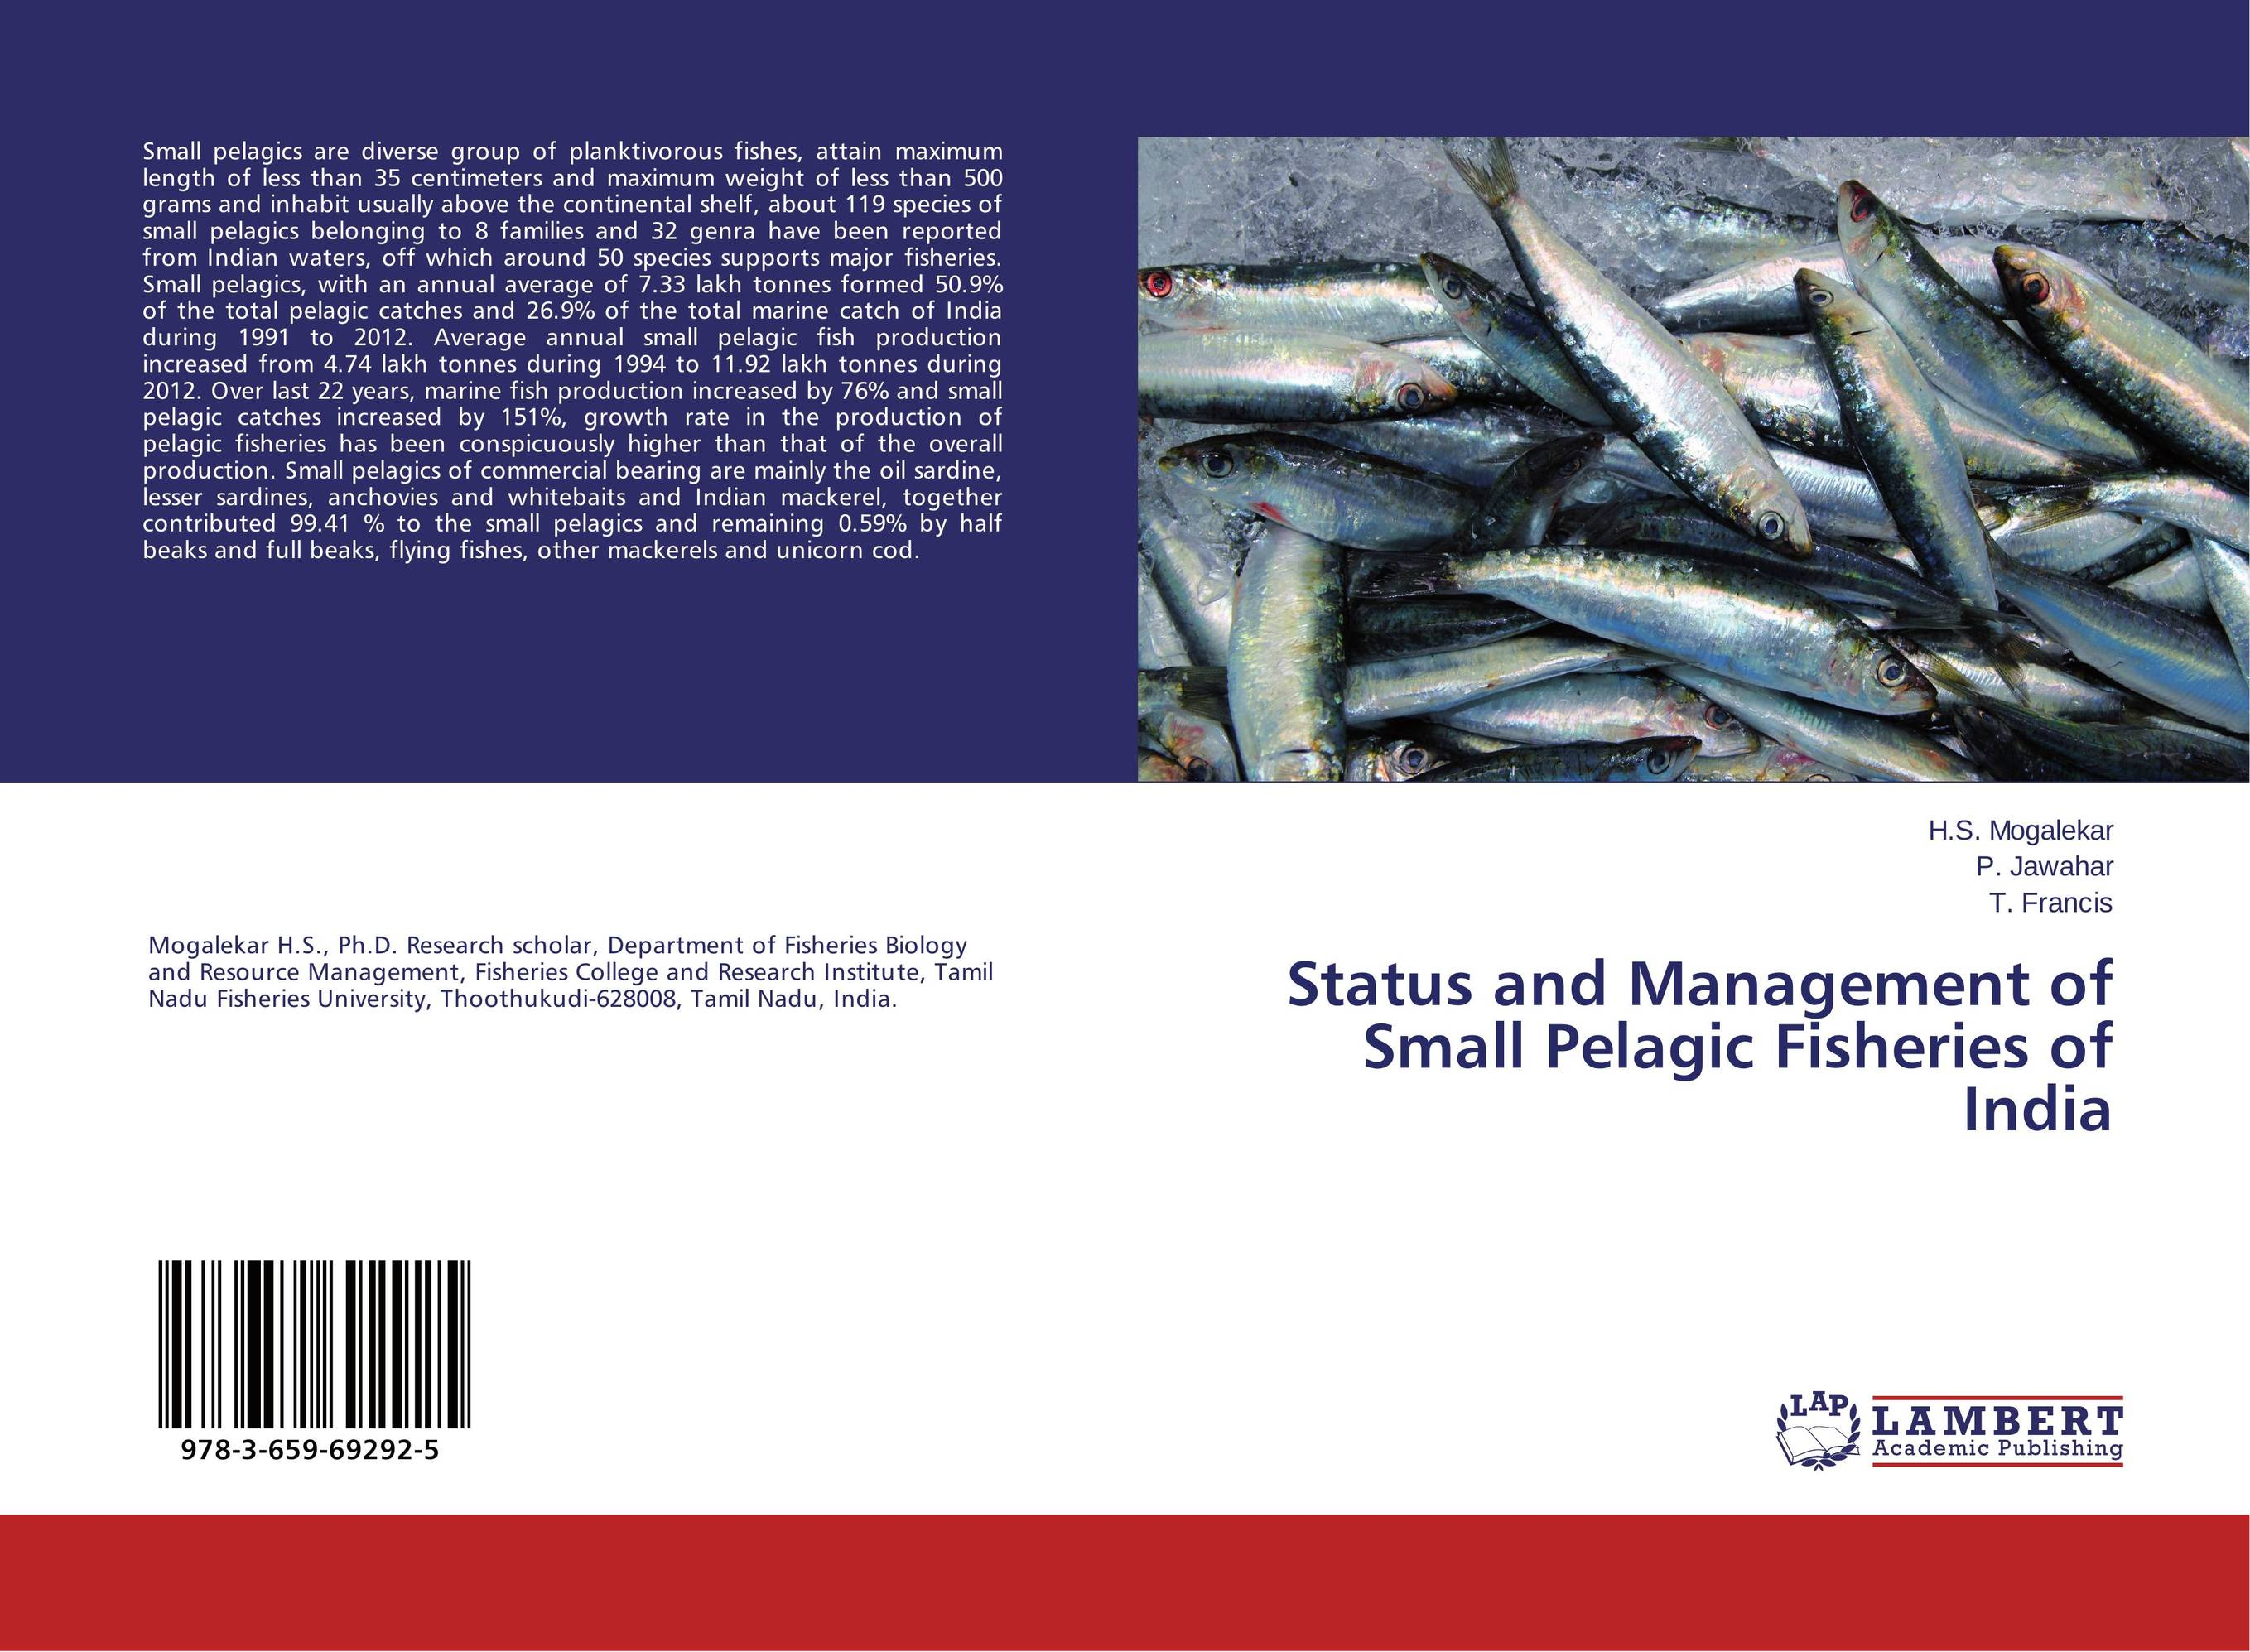 Status and Management of Small Pelagic Fisheries of India